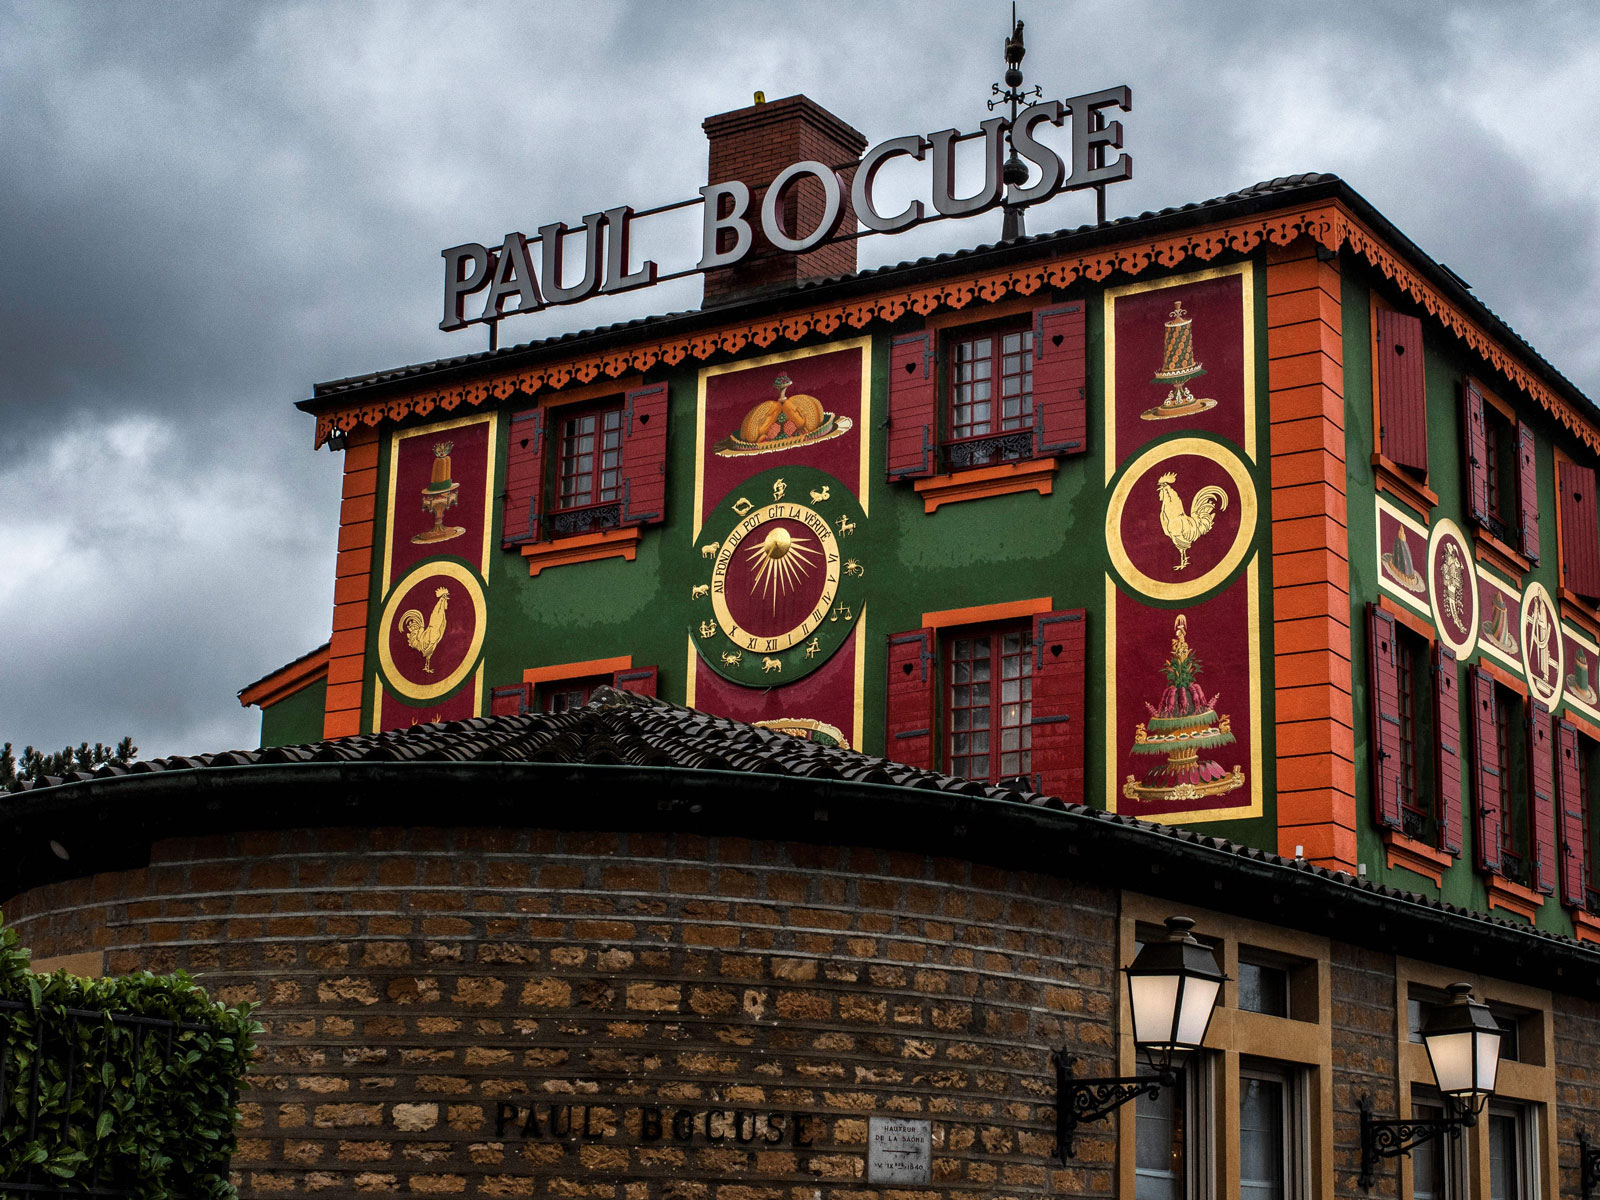 Paul Bocuse's Iconic Restaurant Loses Three-Star Michelin Rating for First Time in 55 Years